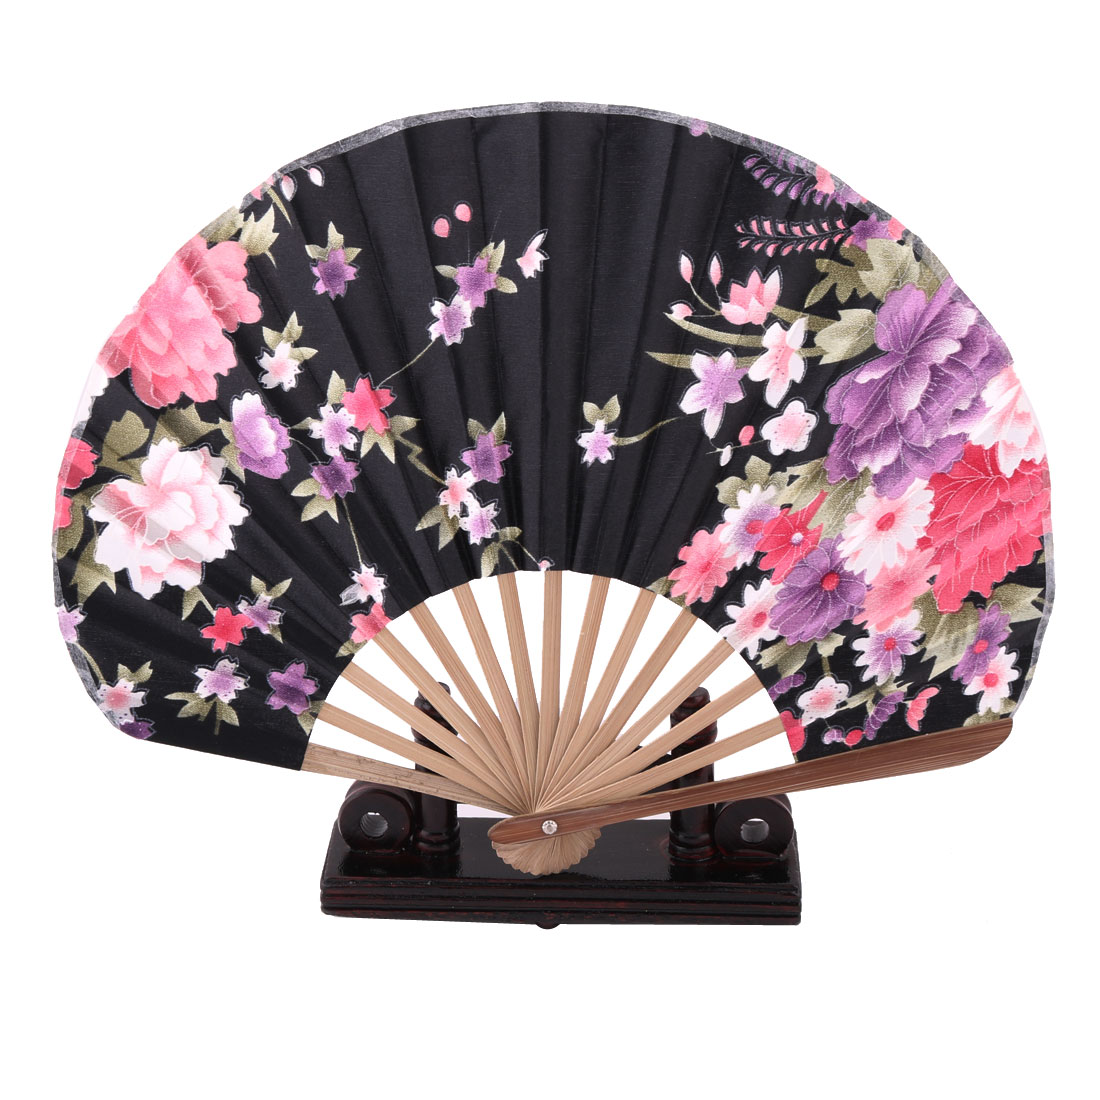 Home Wood Flower Print Chinese Style Handheld Folding Fan Display Holder Multicolor 2 in 1